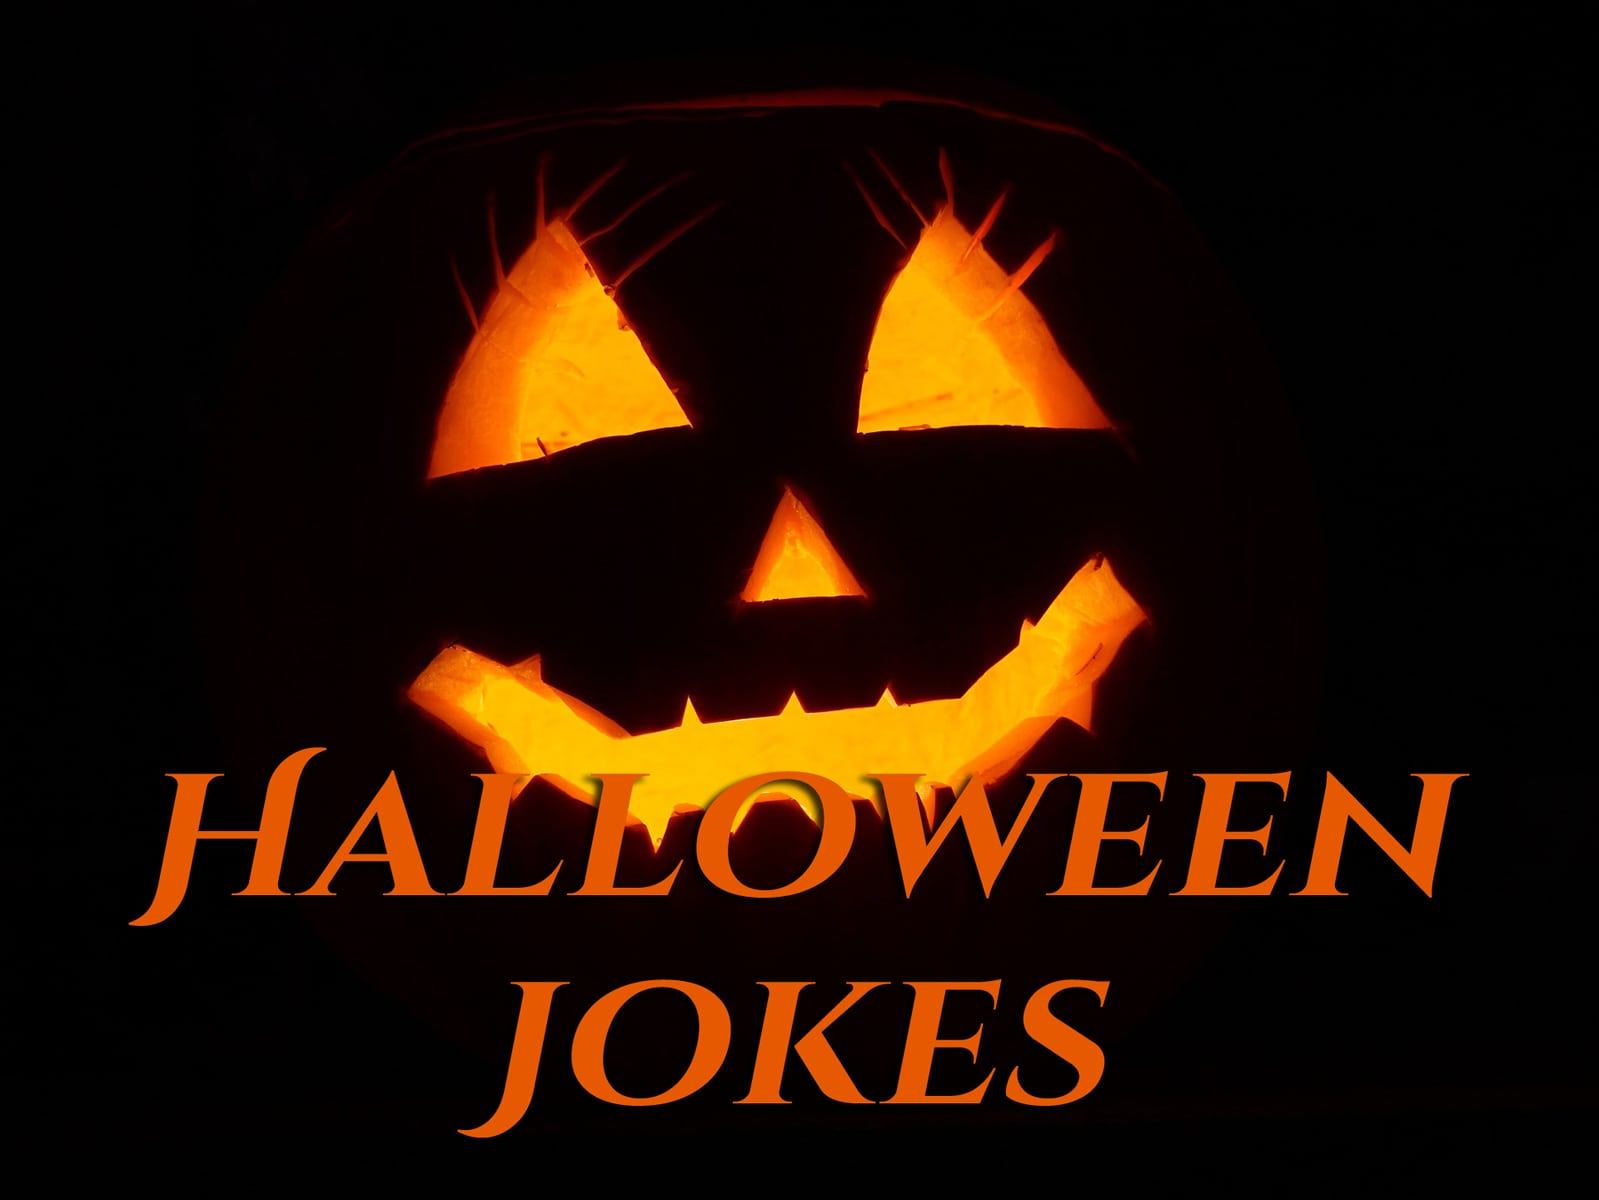 Some Pretty Silly Halloween Jokes